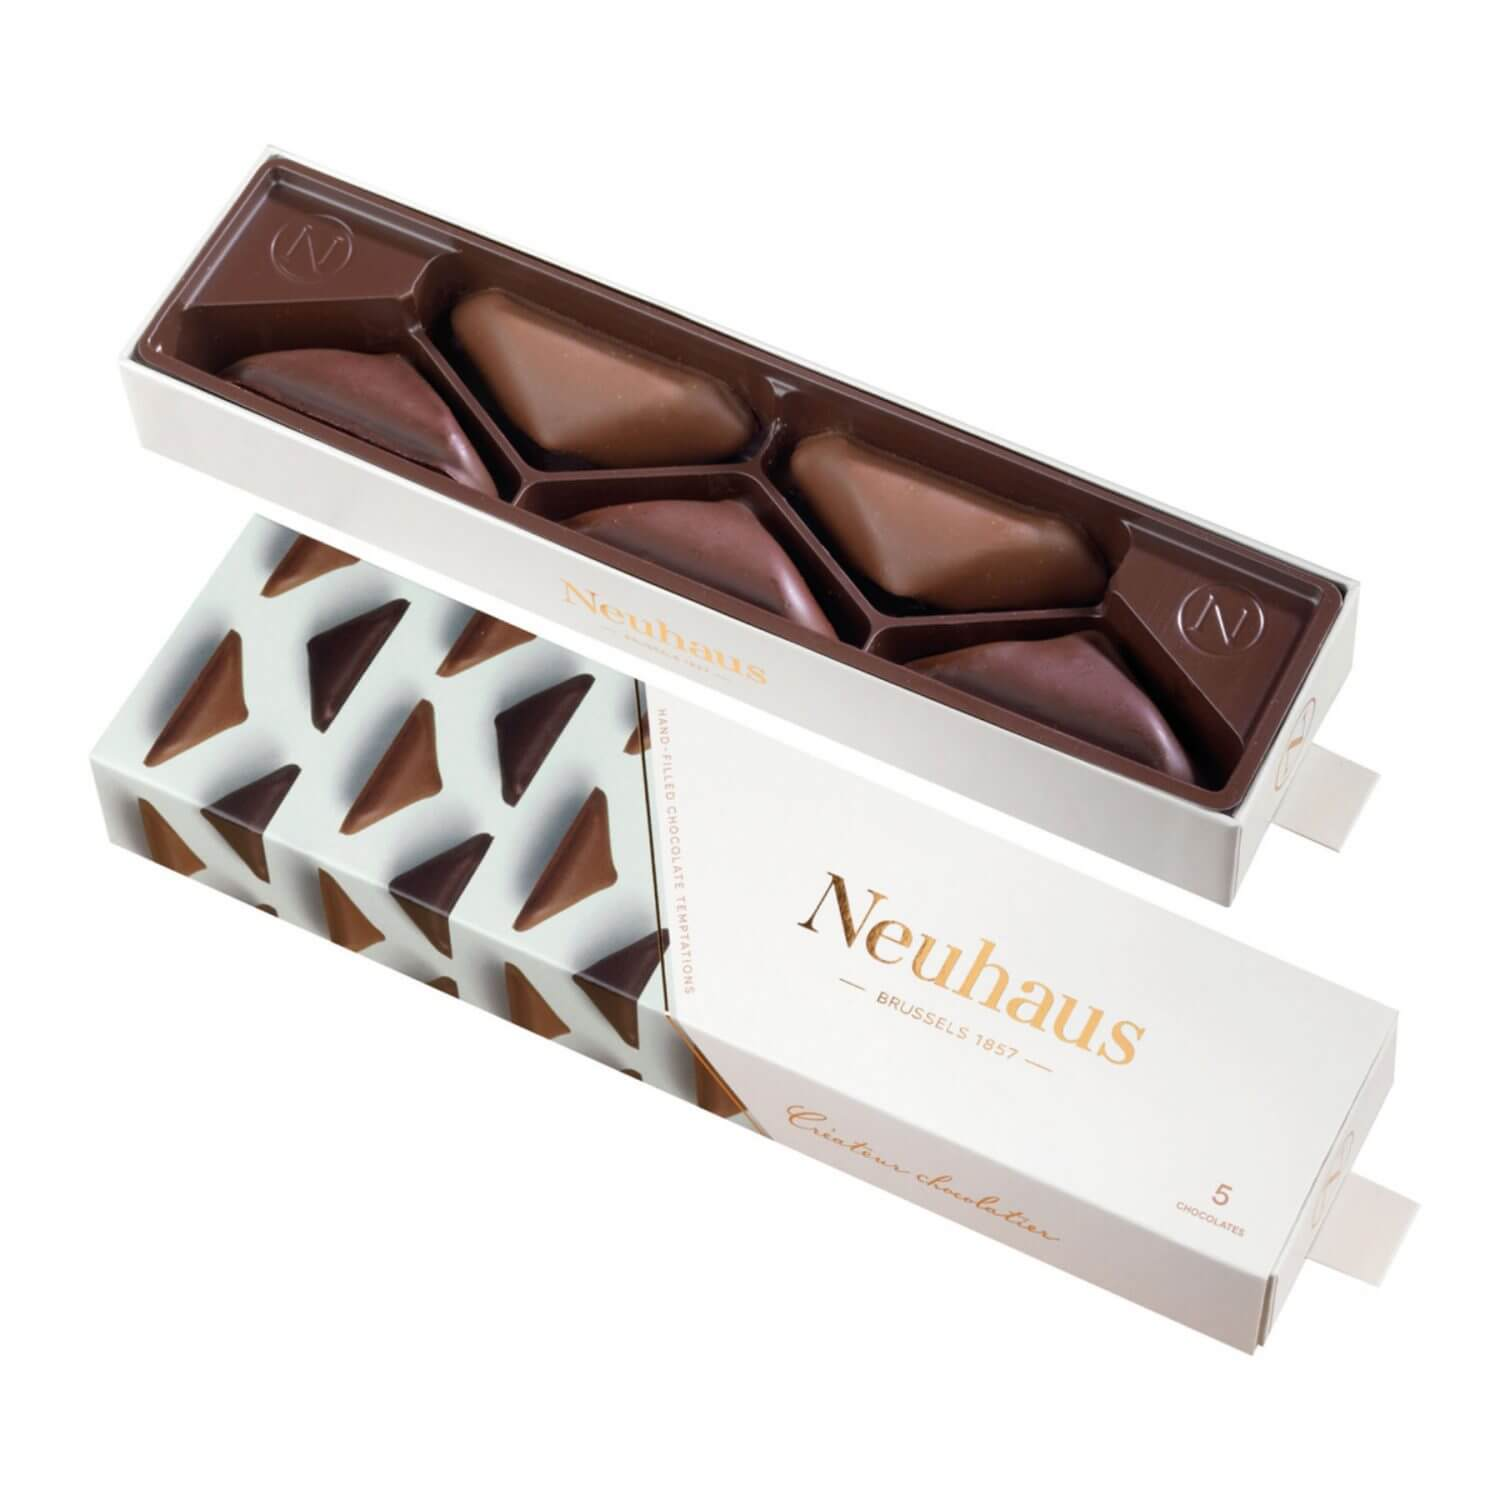 Neuhaus Impulse irresistibles-Twee